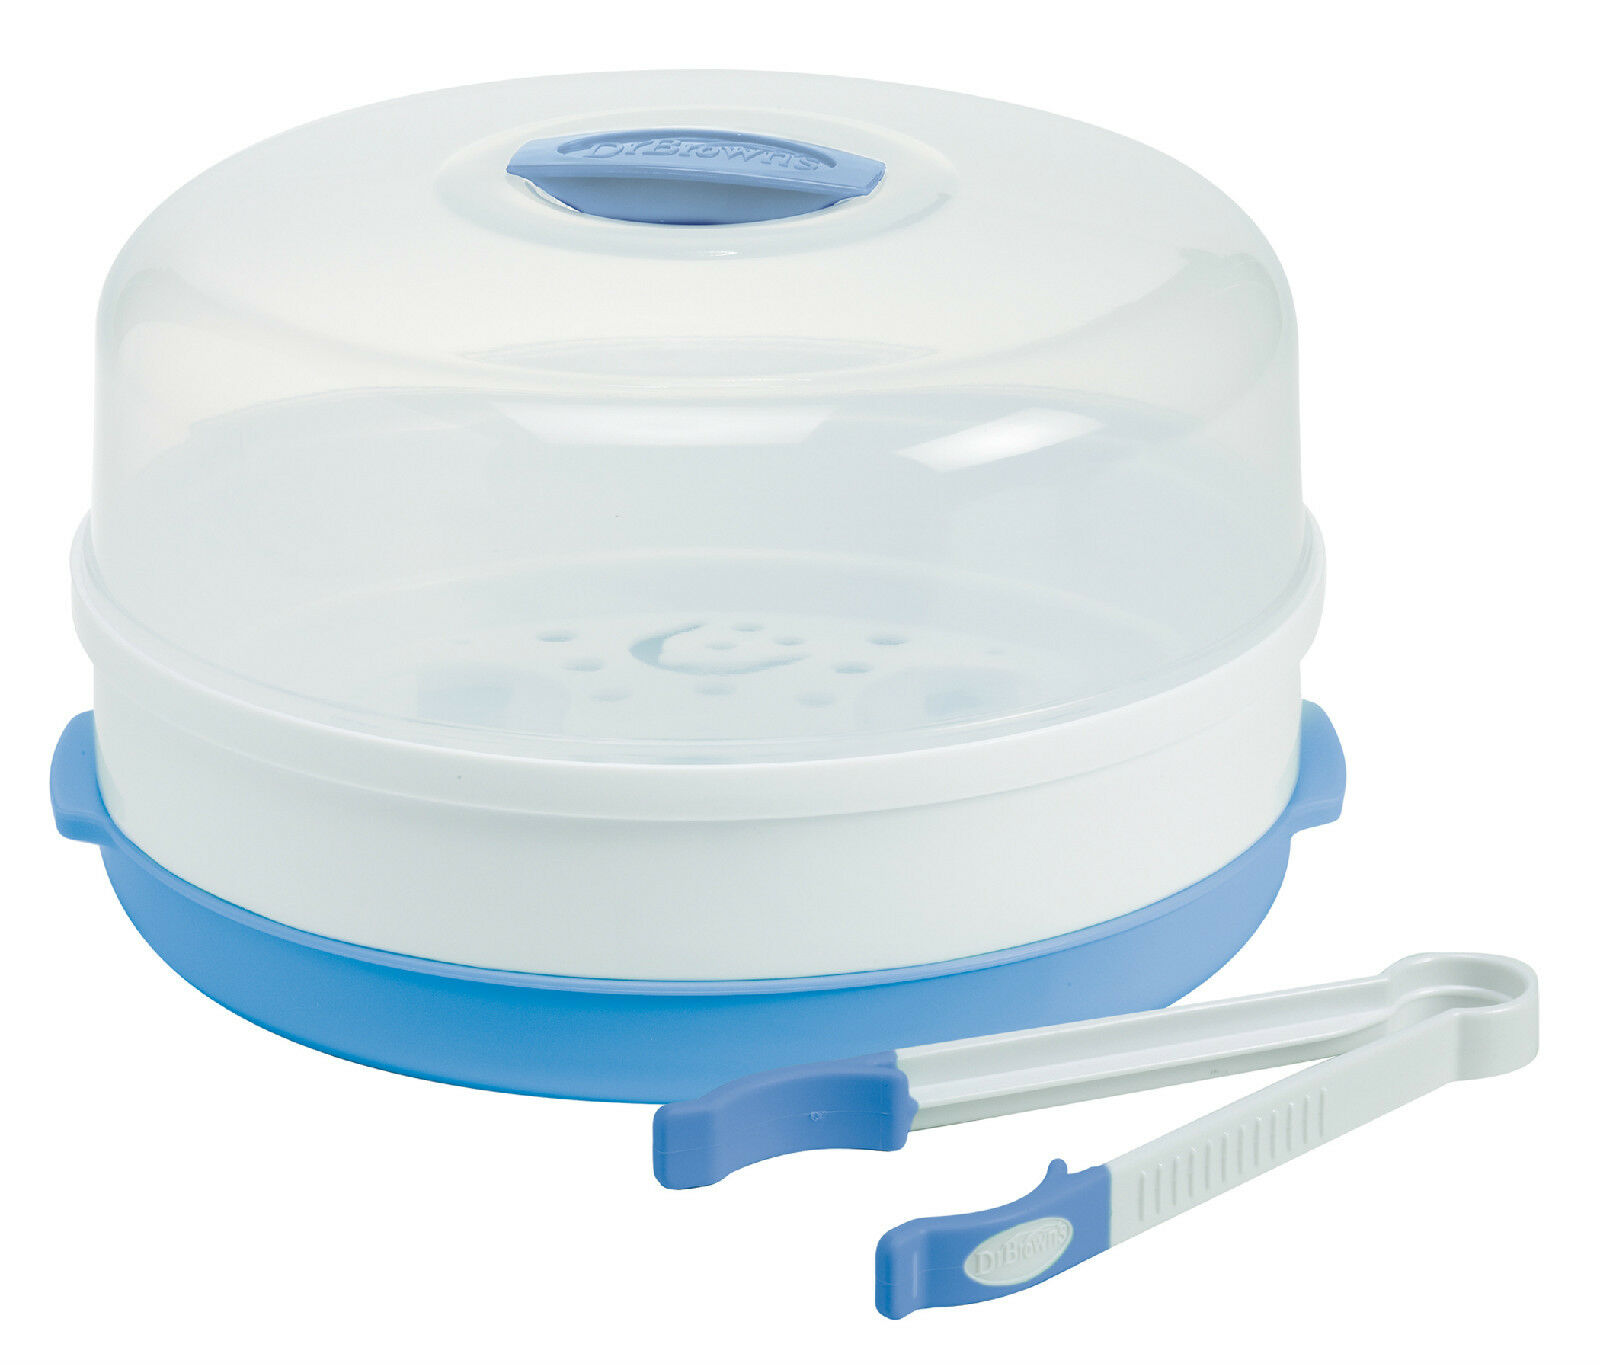 Dr. Brown's Microwave Steam Sterilizer - colors as shown, on